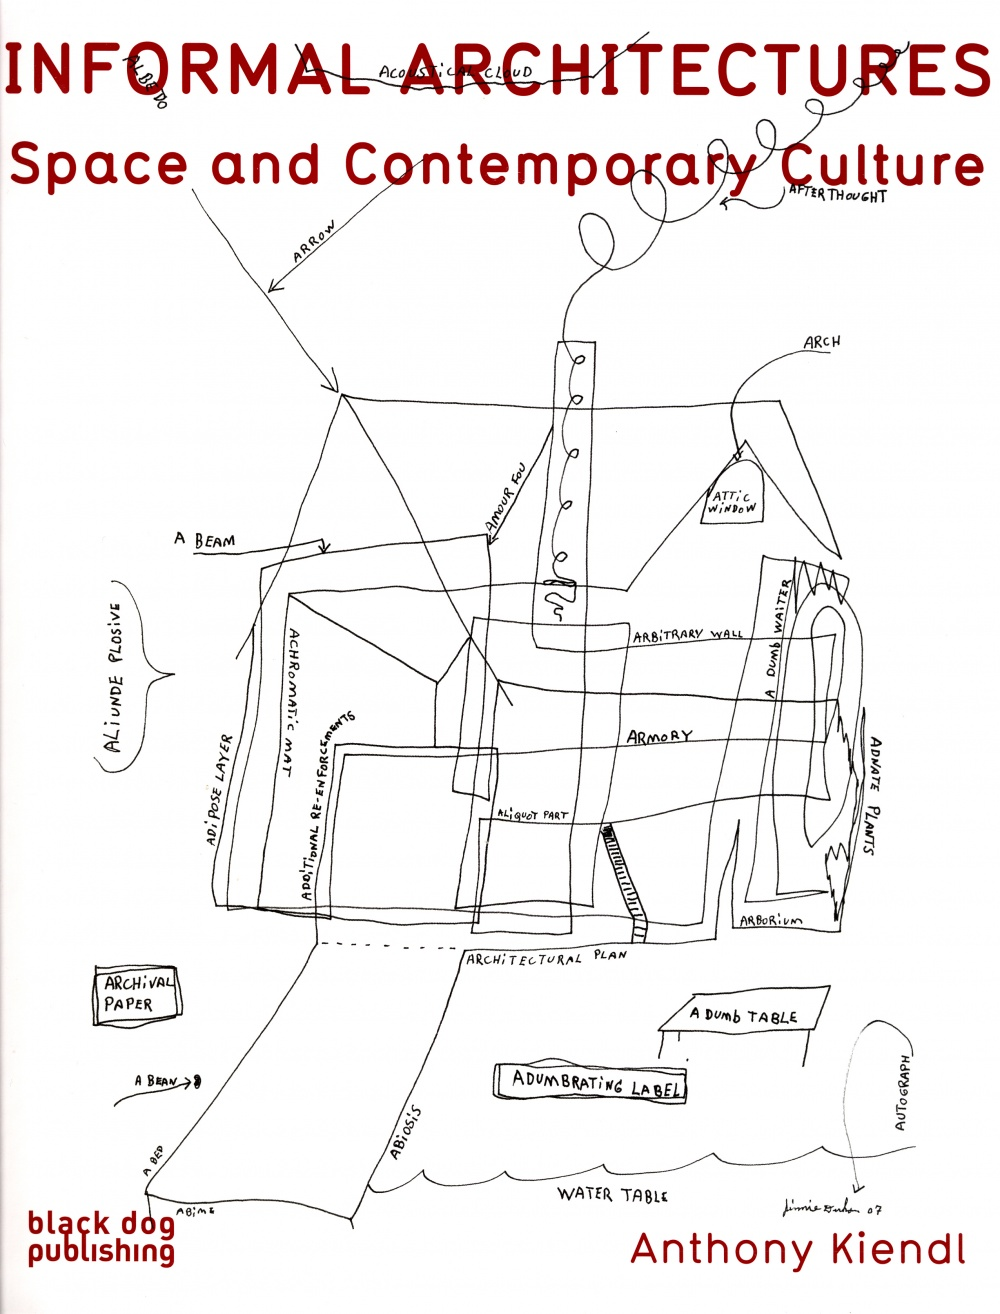 Informal Architectures: Space and Contemporary Culture